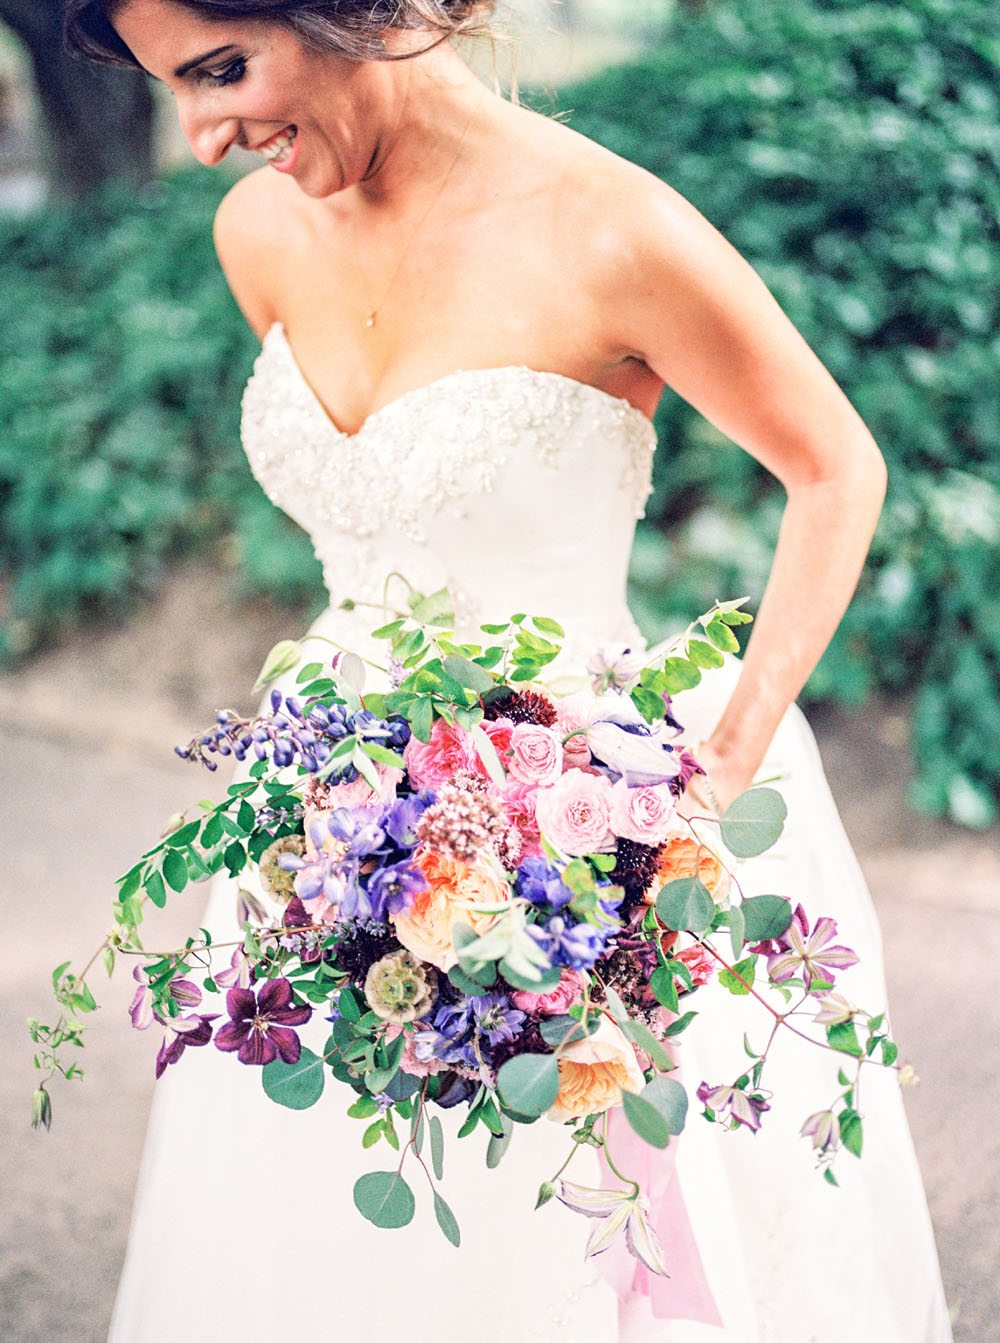 Bridalbliss.com | Portland Wedding| Oregon Event Planning and Design | Alexandra Grace Photography | Face Body Beauty